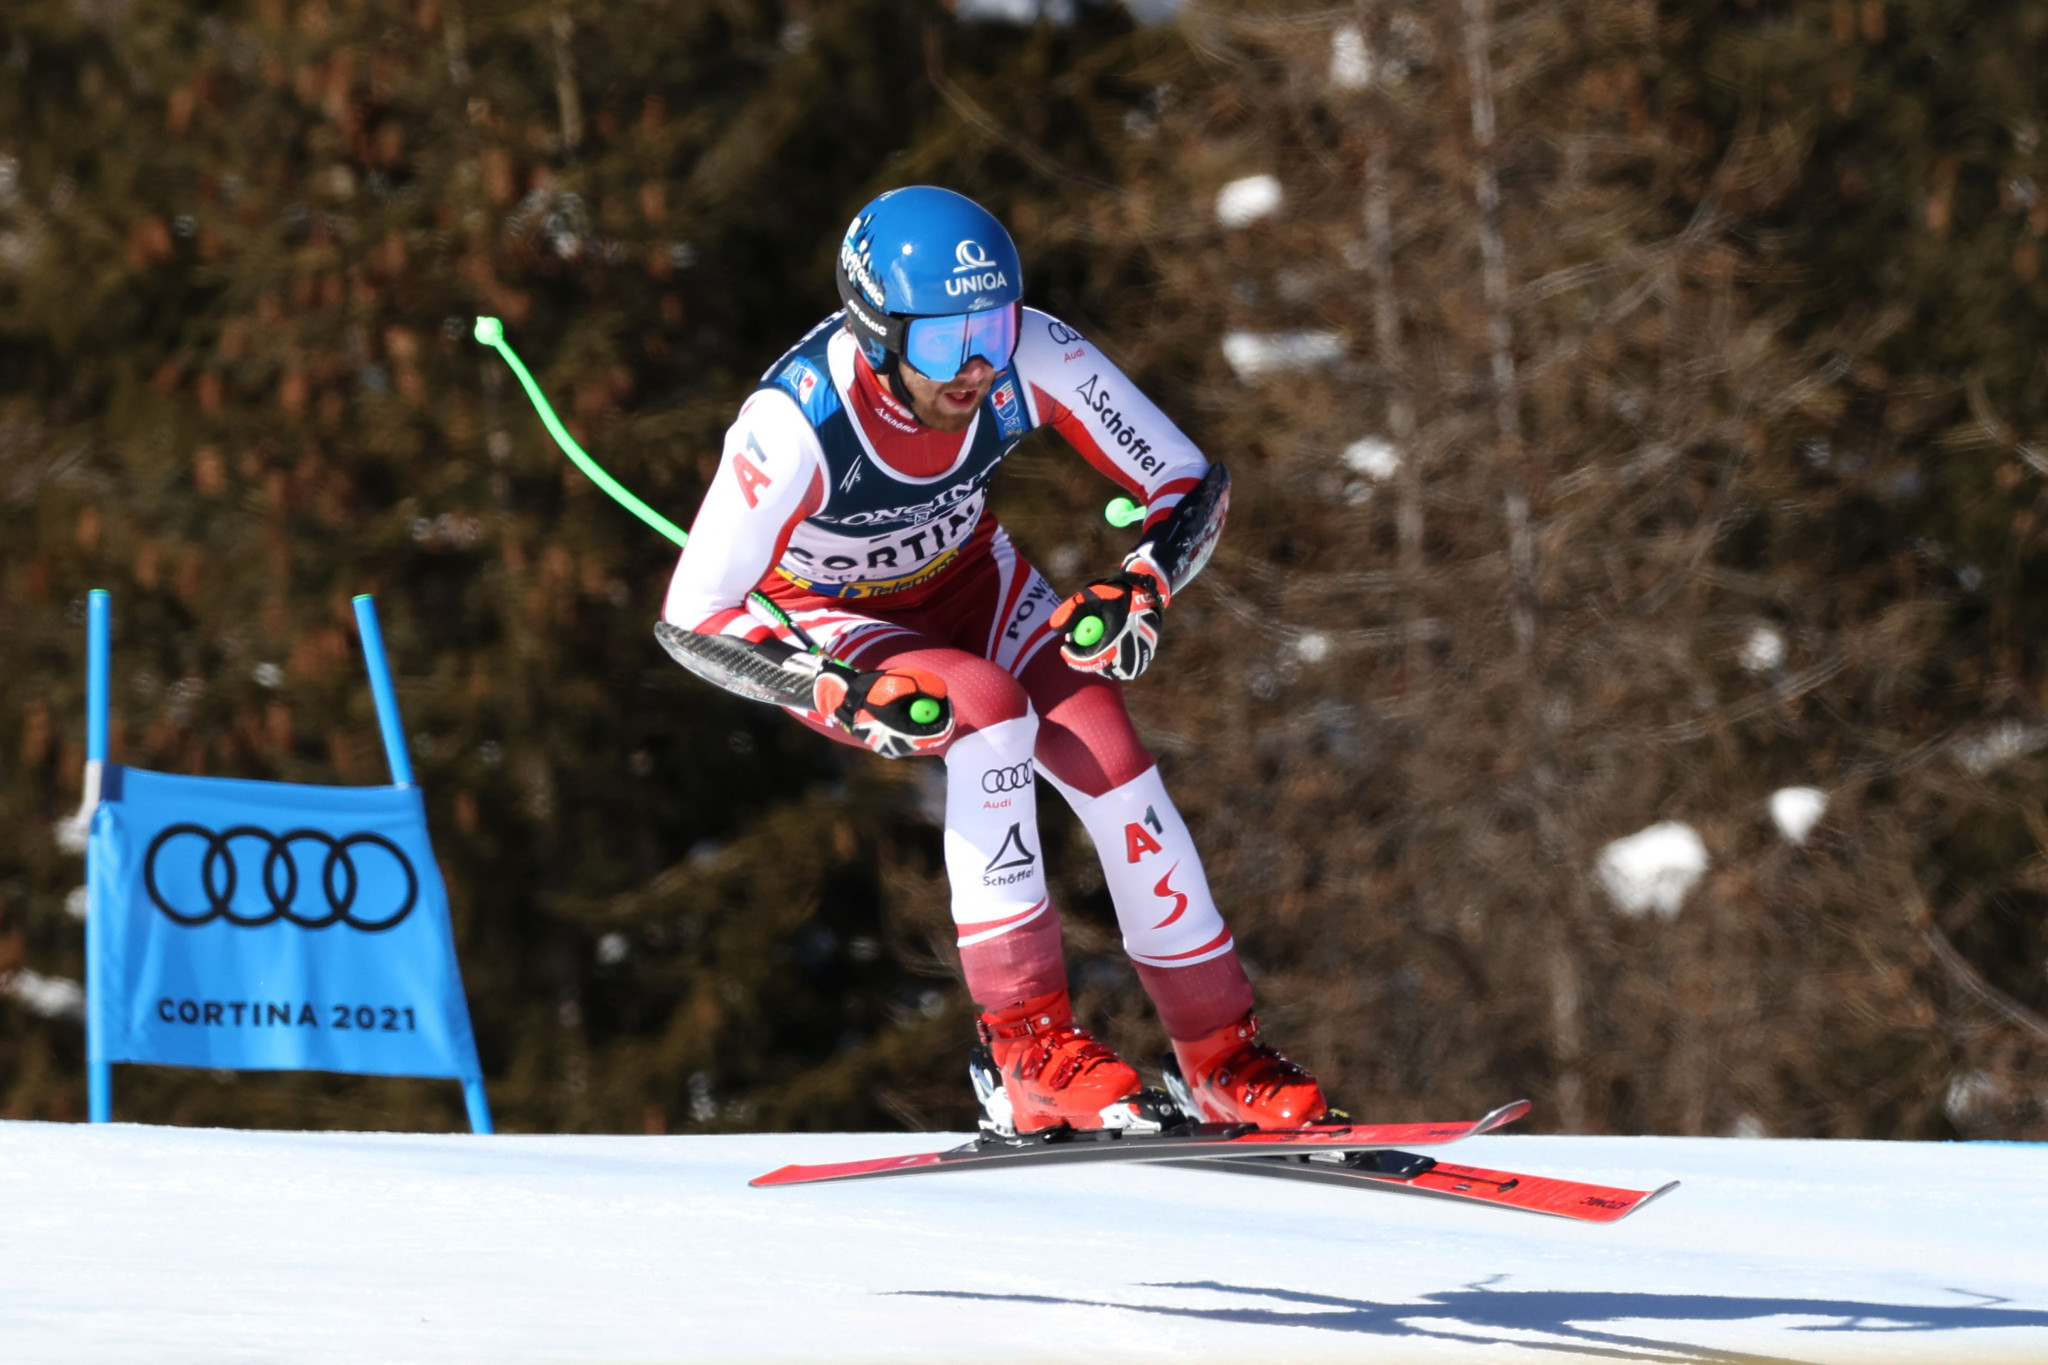 Austria's Marco Schwarz was the victor in the men's Alpine combined contest ©Getty Images